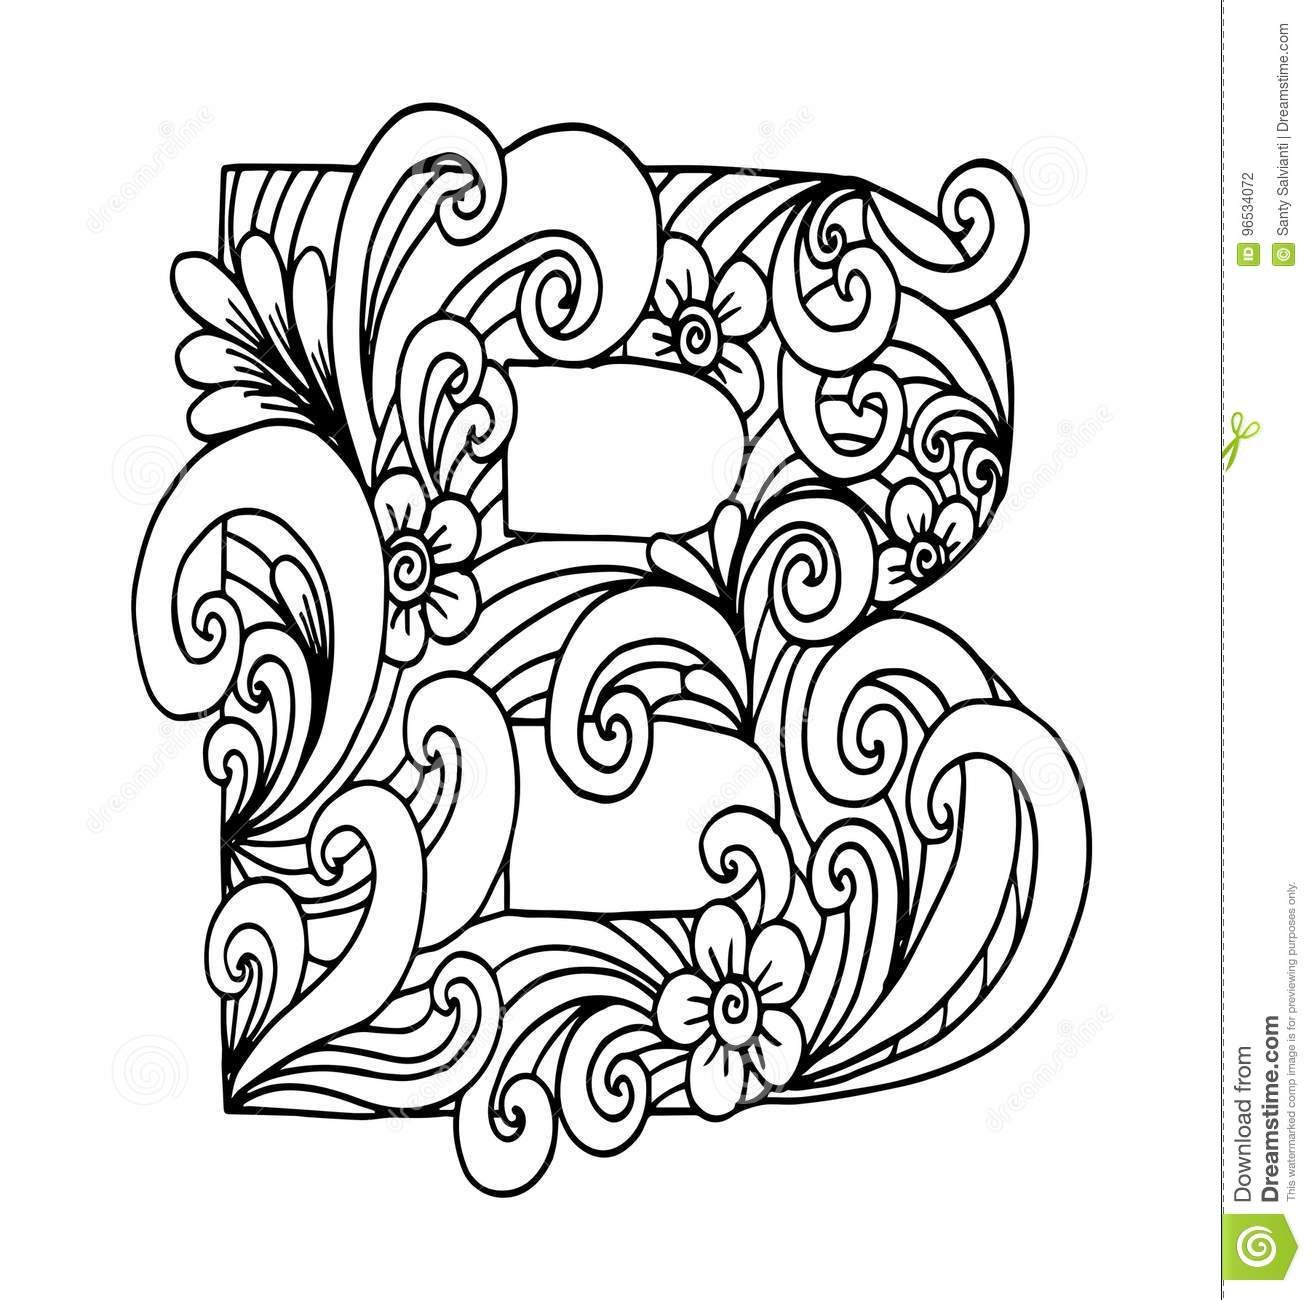 Zentangle Stylized Alphabet Letter B In Doodle Style